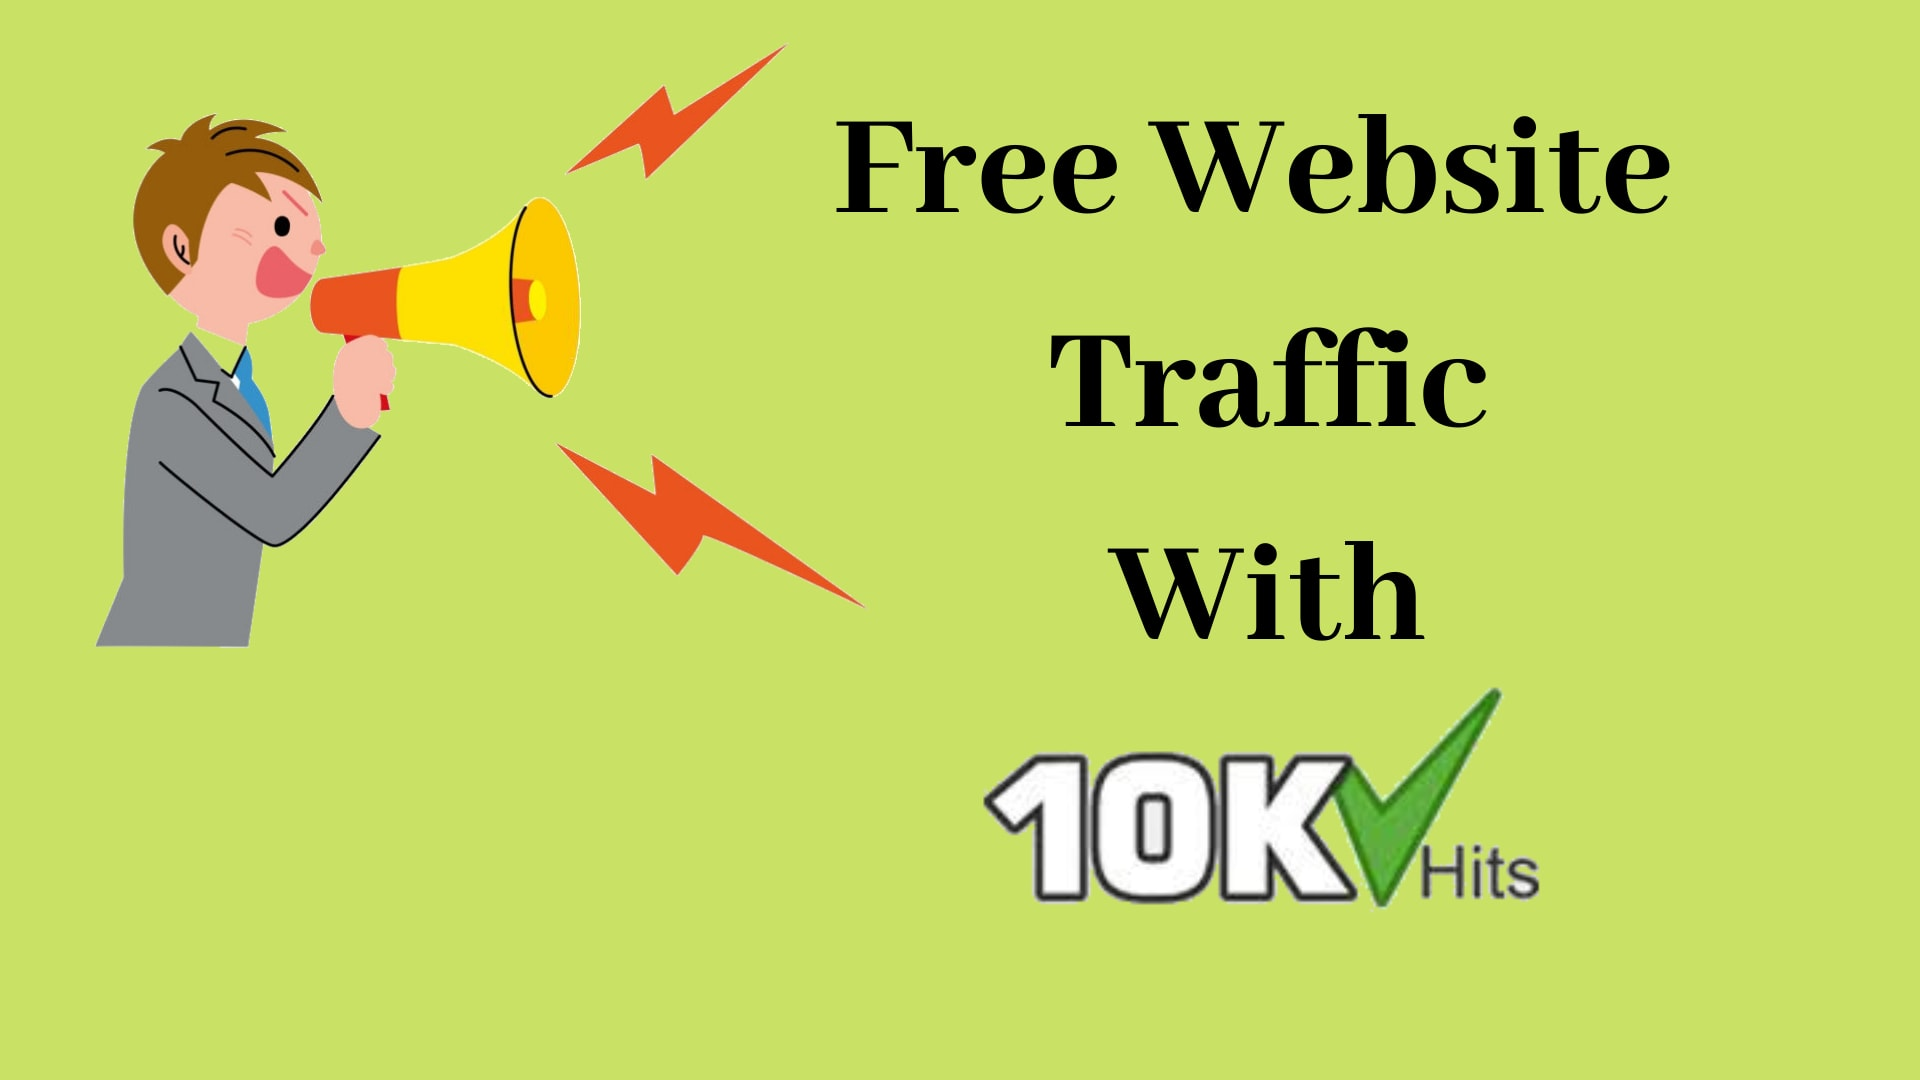 Free Website Traffic with 10khits 2020